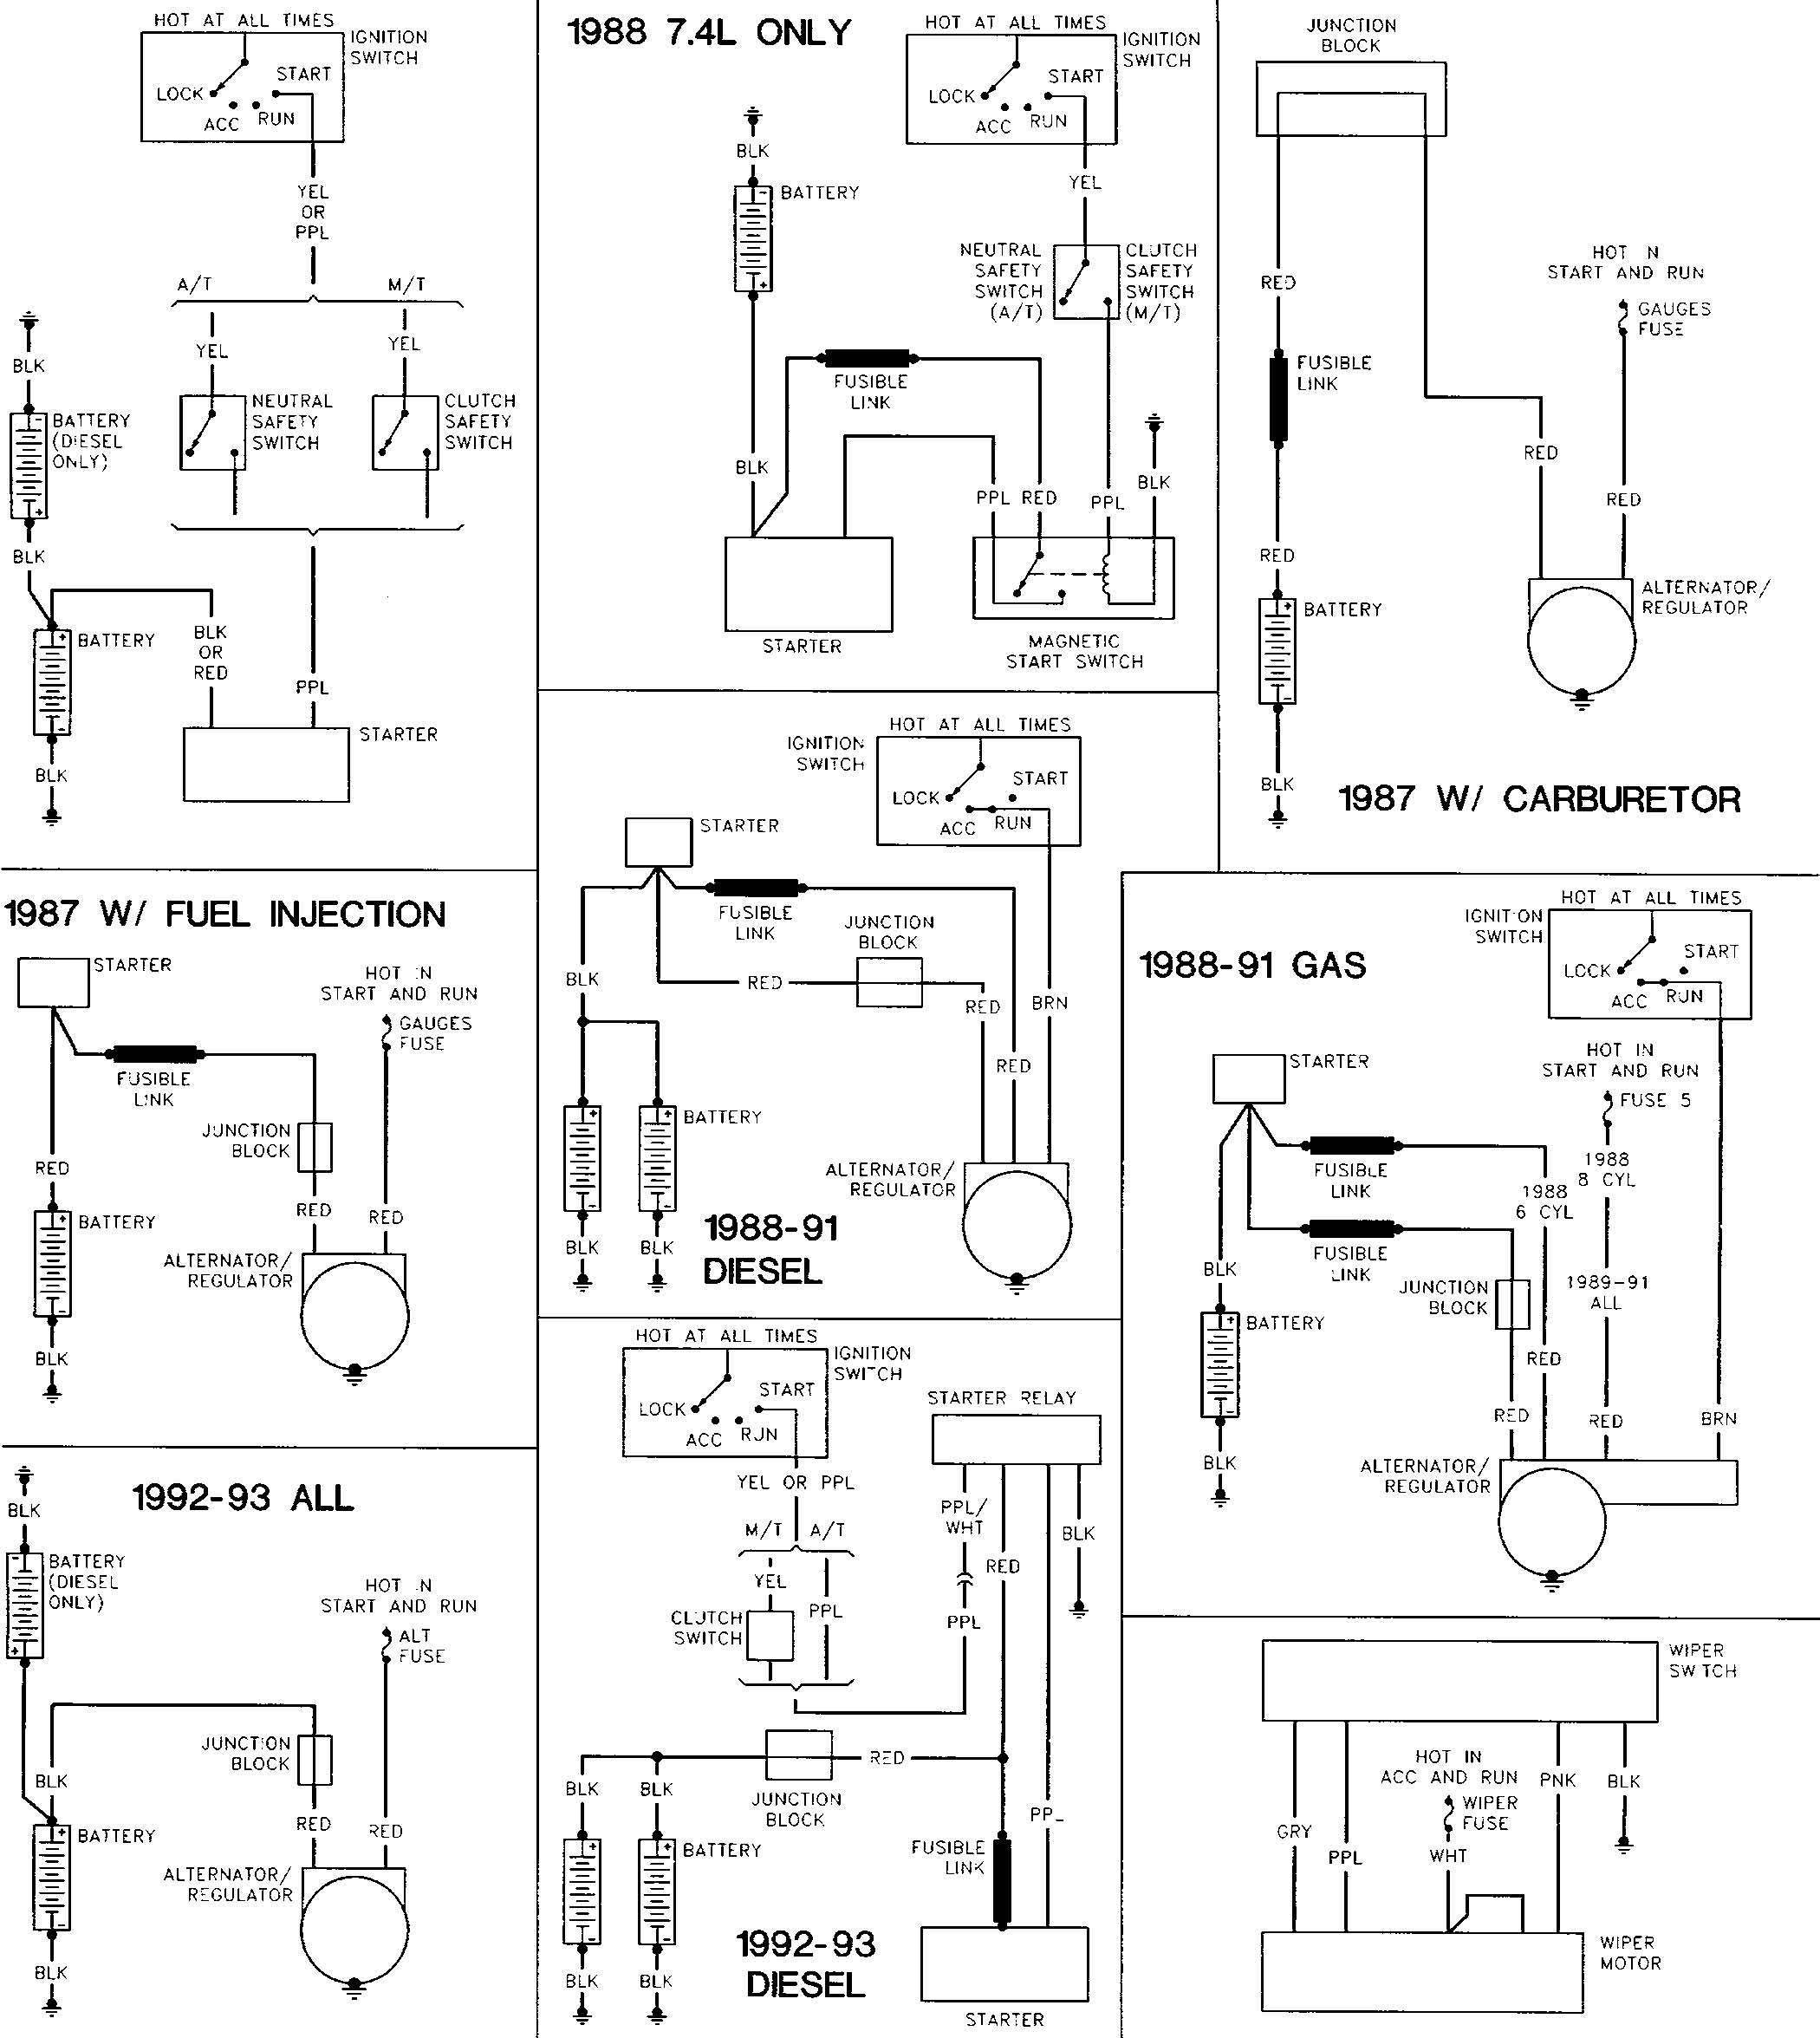 2002 monaco wiring diagram 1990 monaco wiring diagram